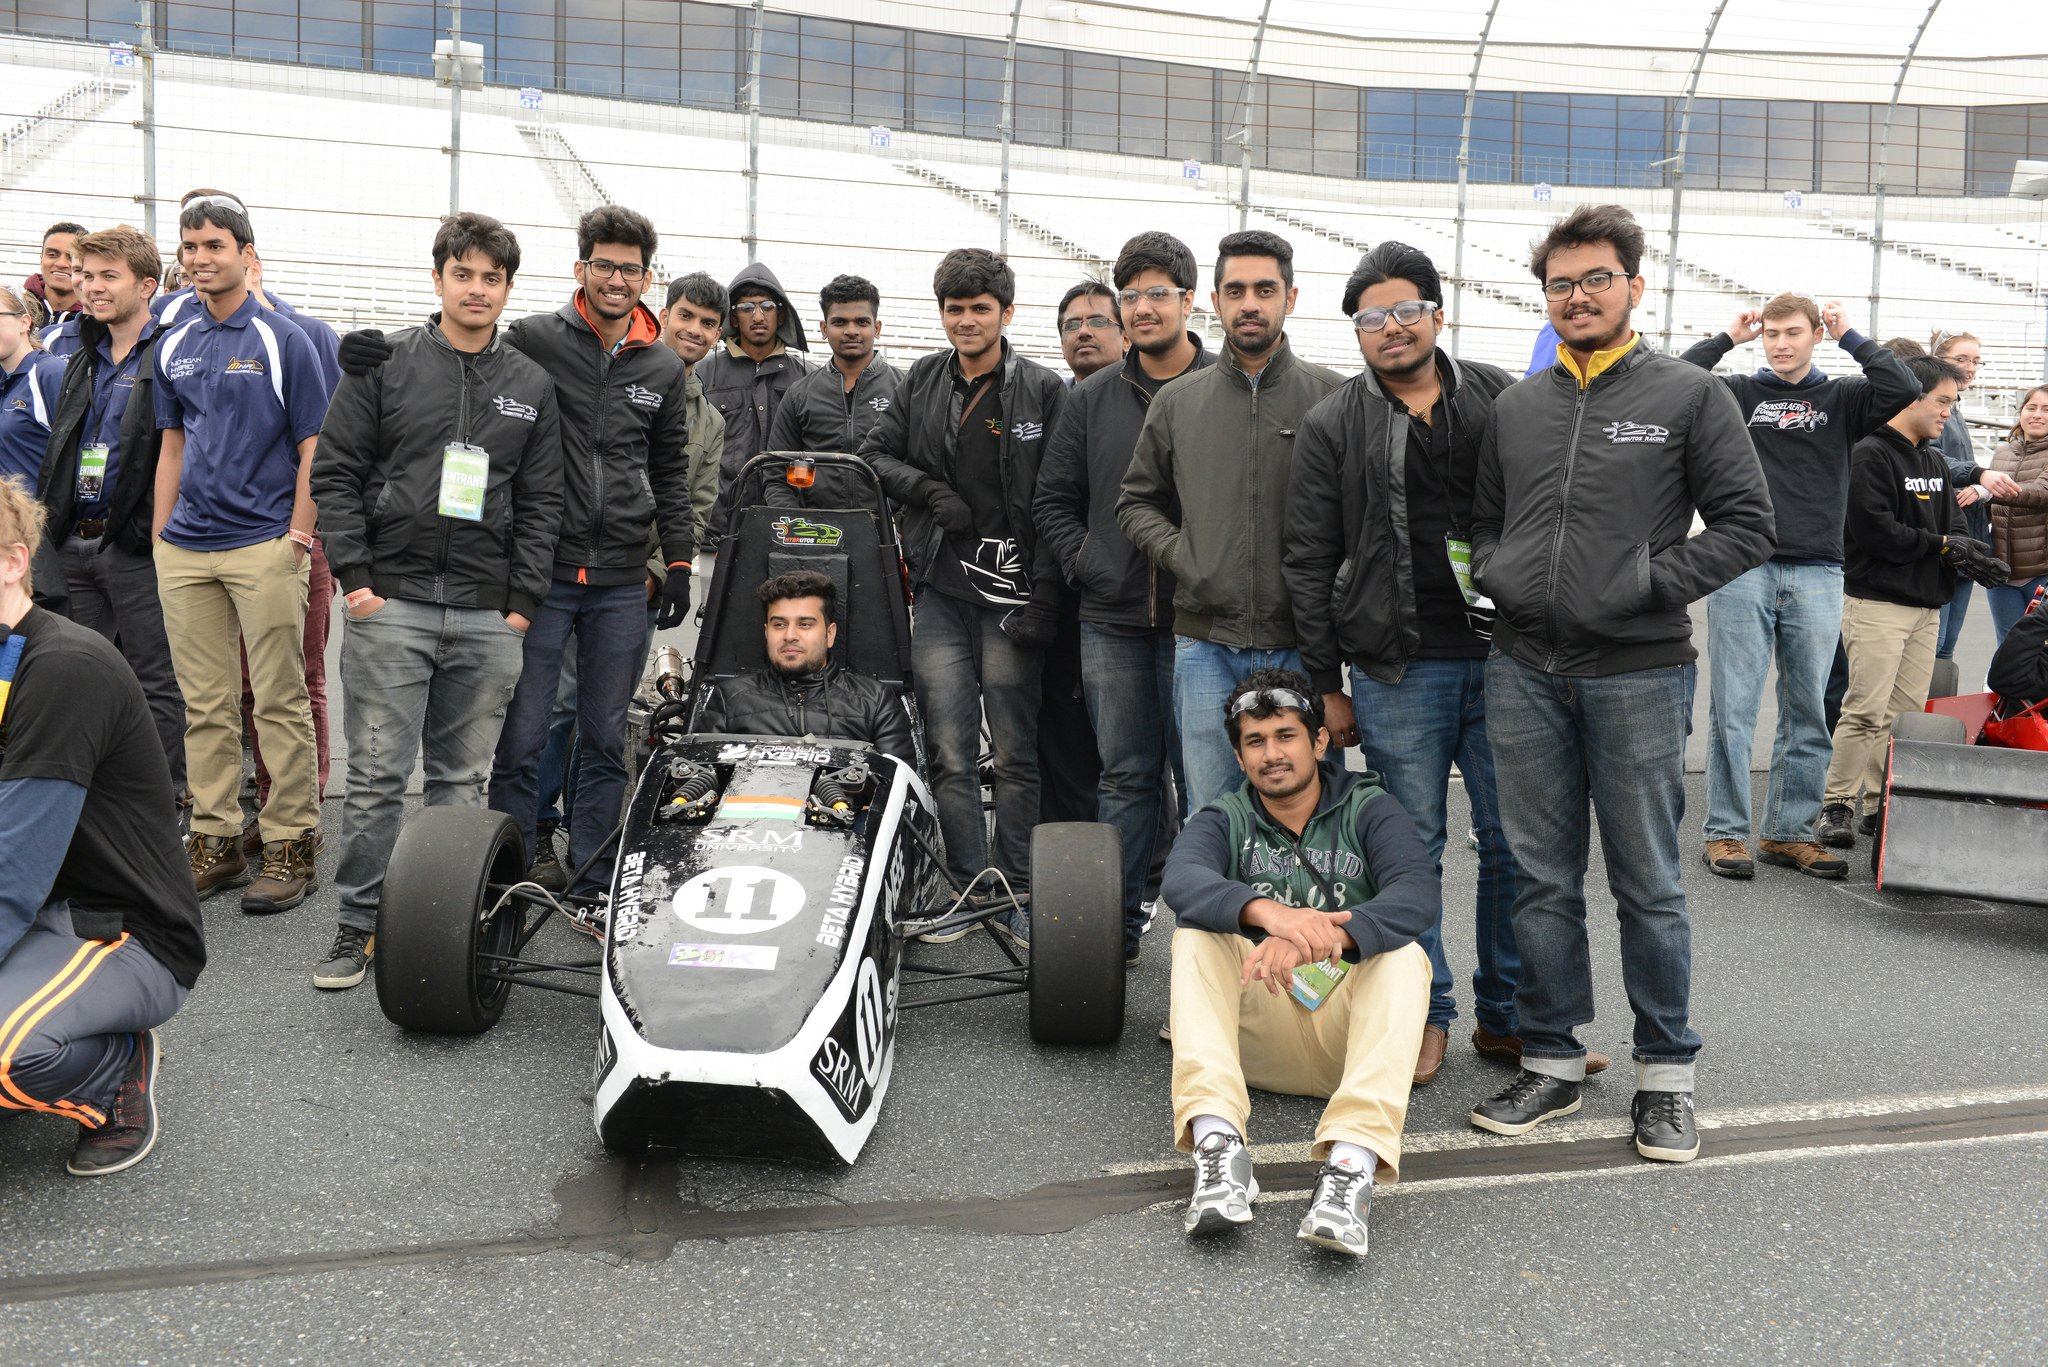 Congrats to SRM University @Hybrutos_Racing @SRM_Univ for taking 3rd place in hybrid at #formulahybrid17! @the_hindu @timesofindia https://t.co/RpdFCb7mwo